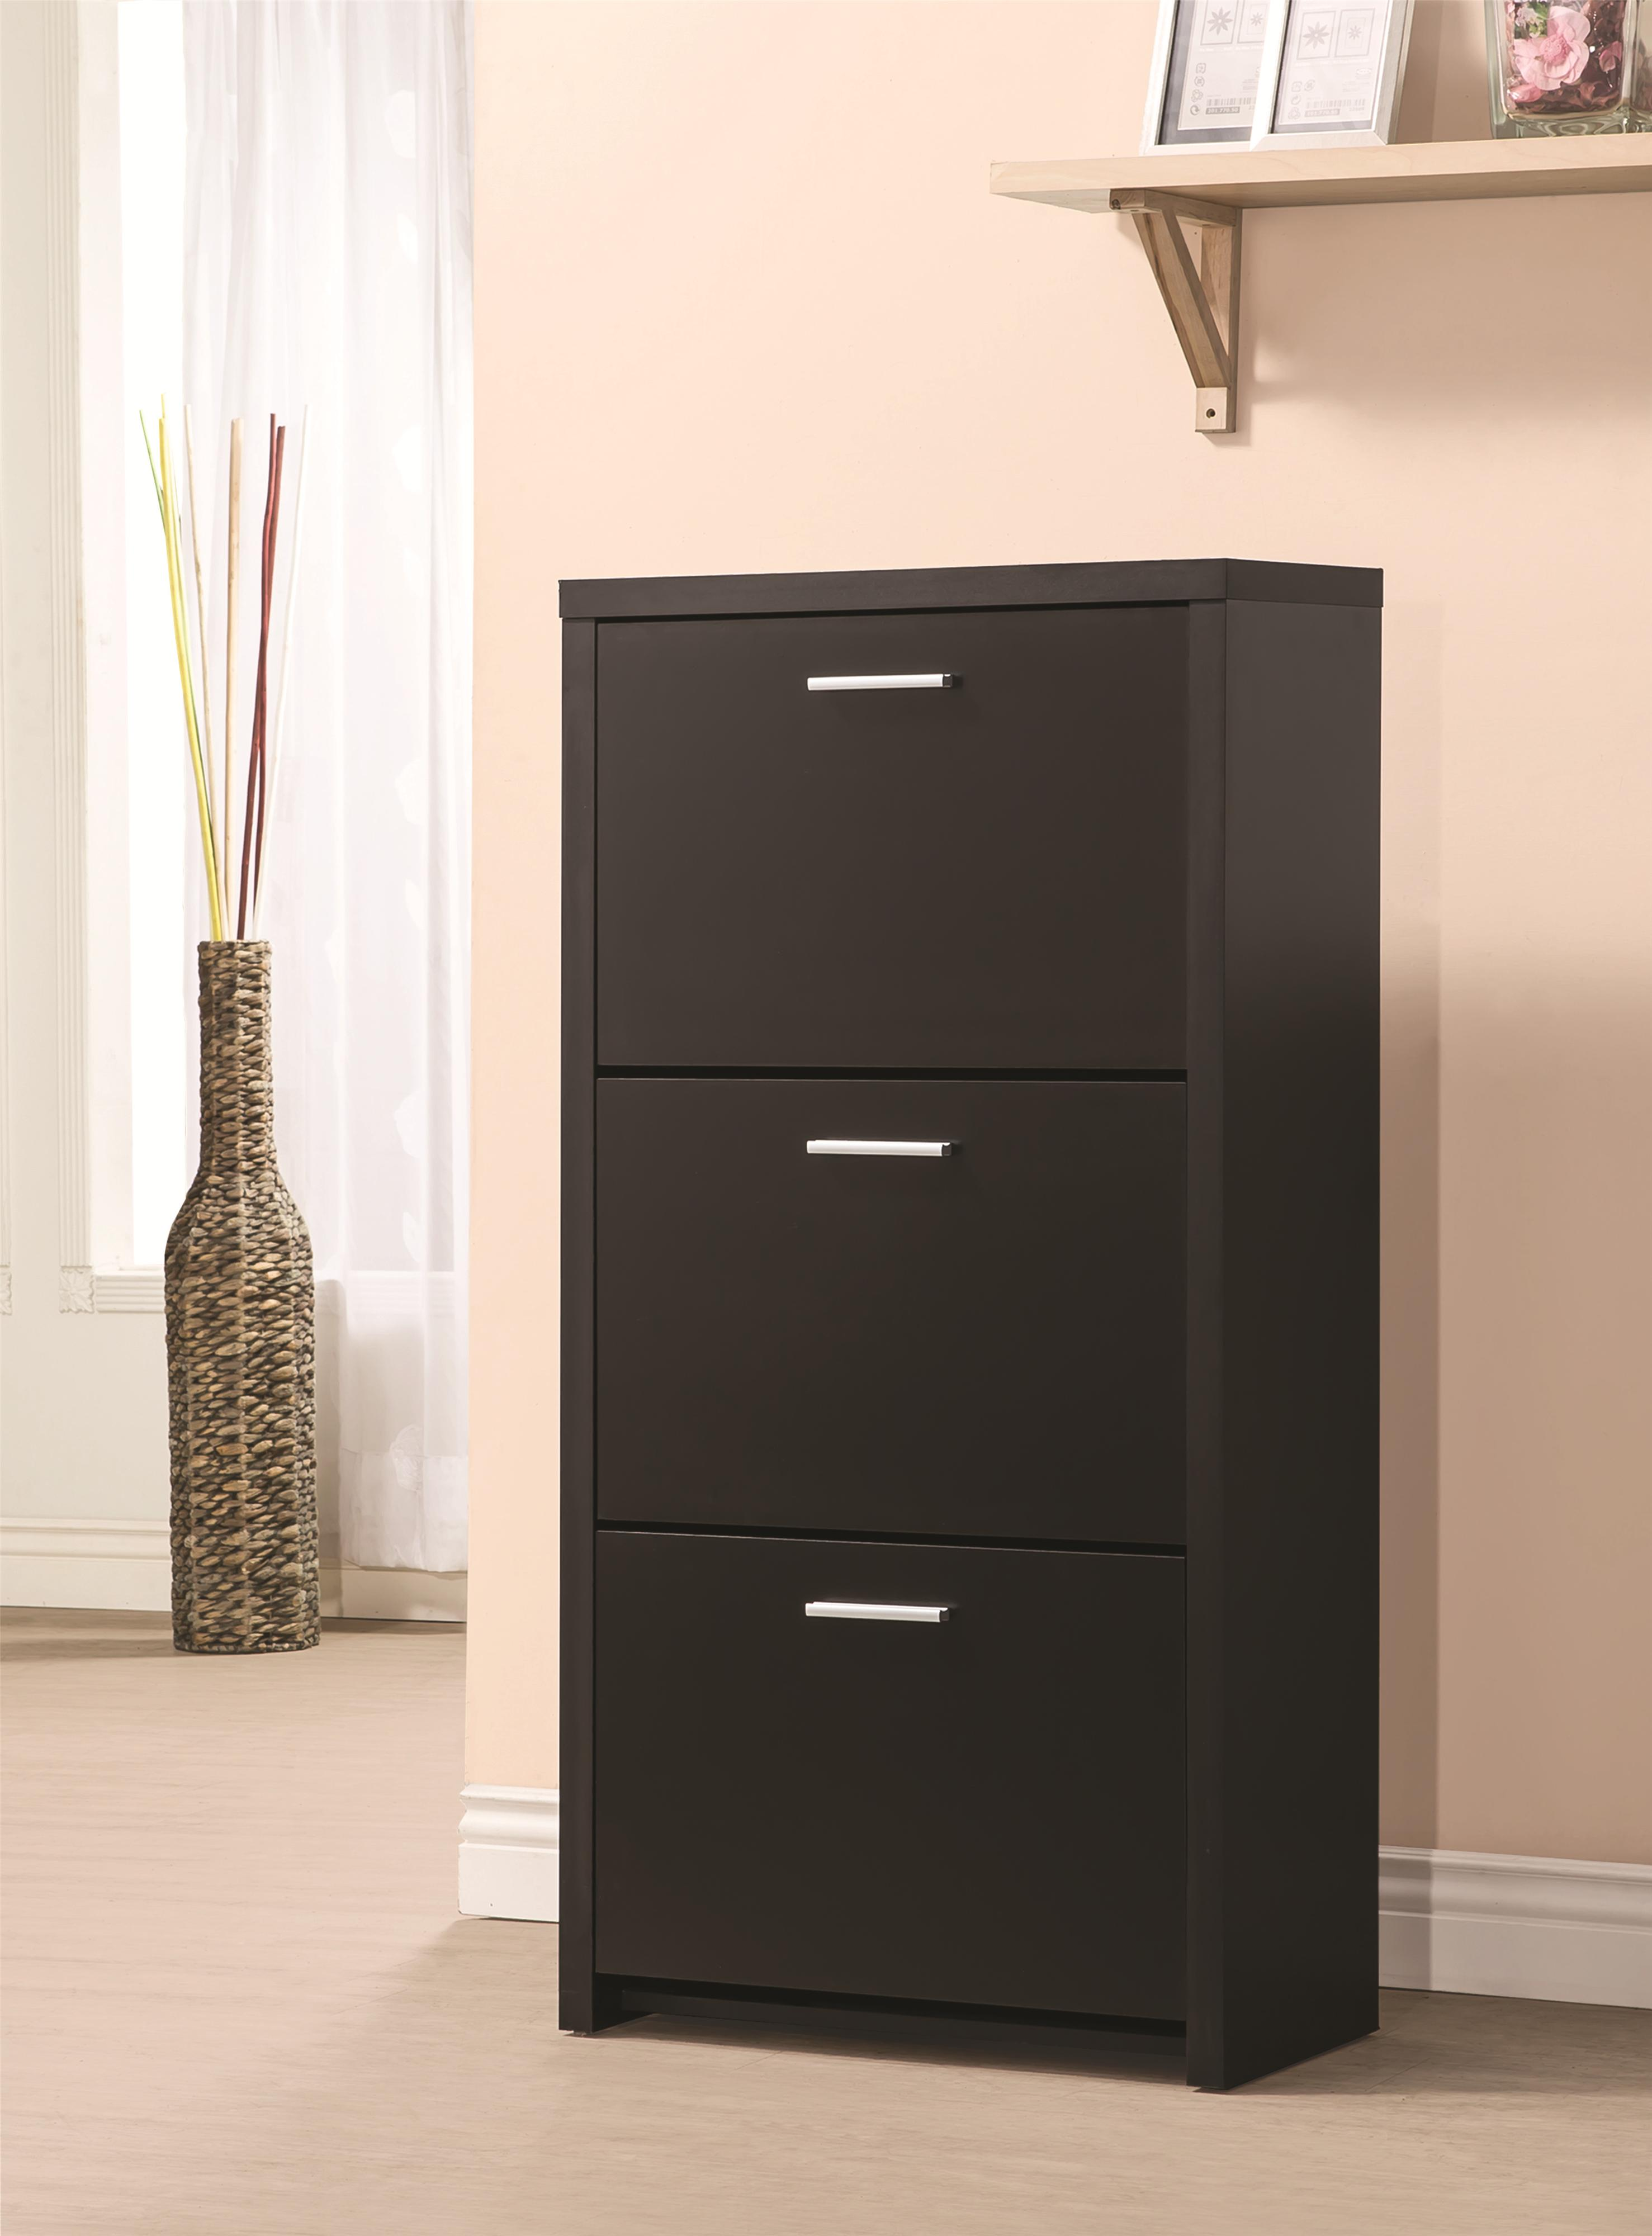 Accent Cabinets Tall 3 Drawer Shoe Cabinet Quality